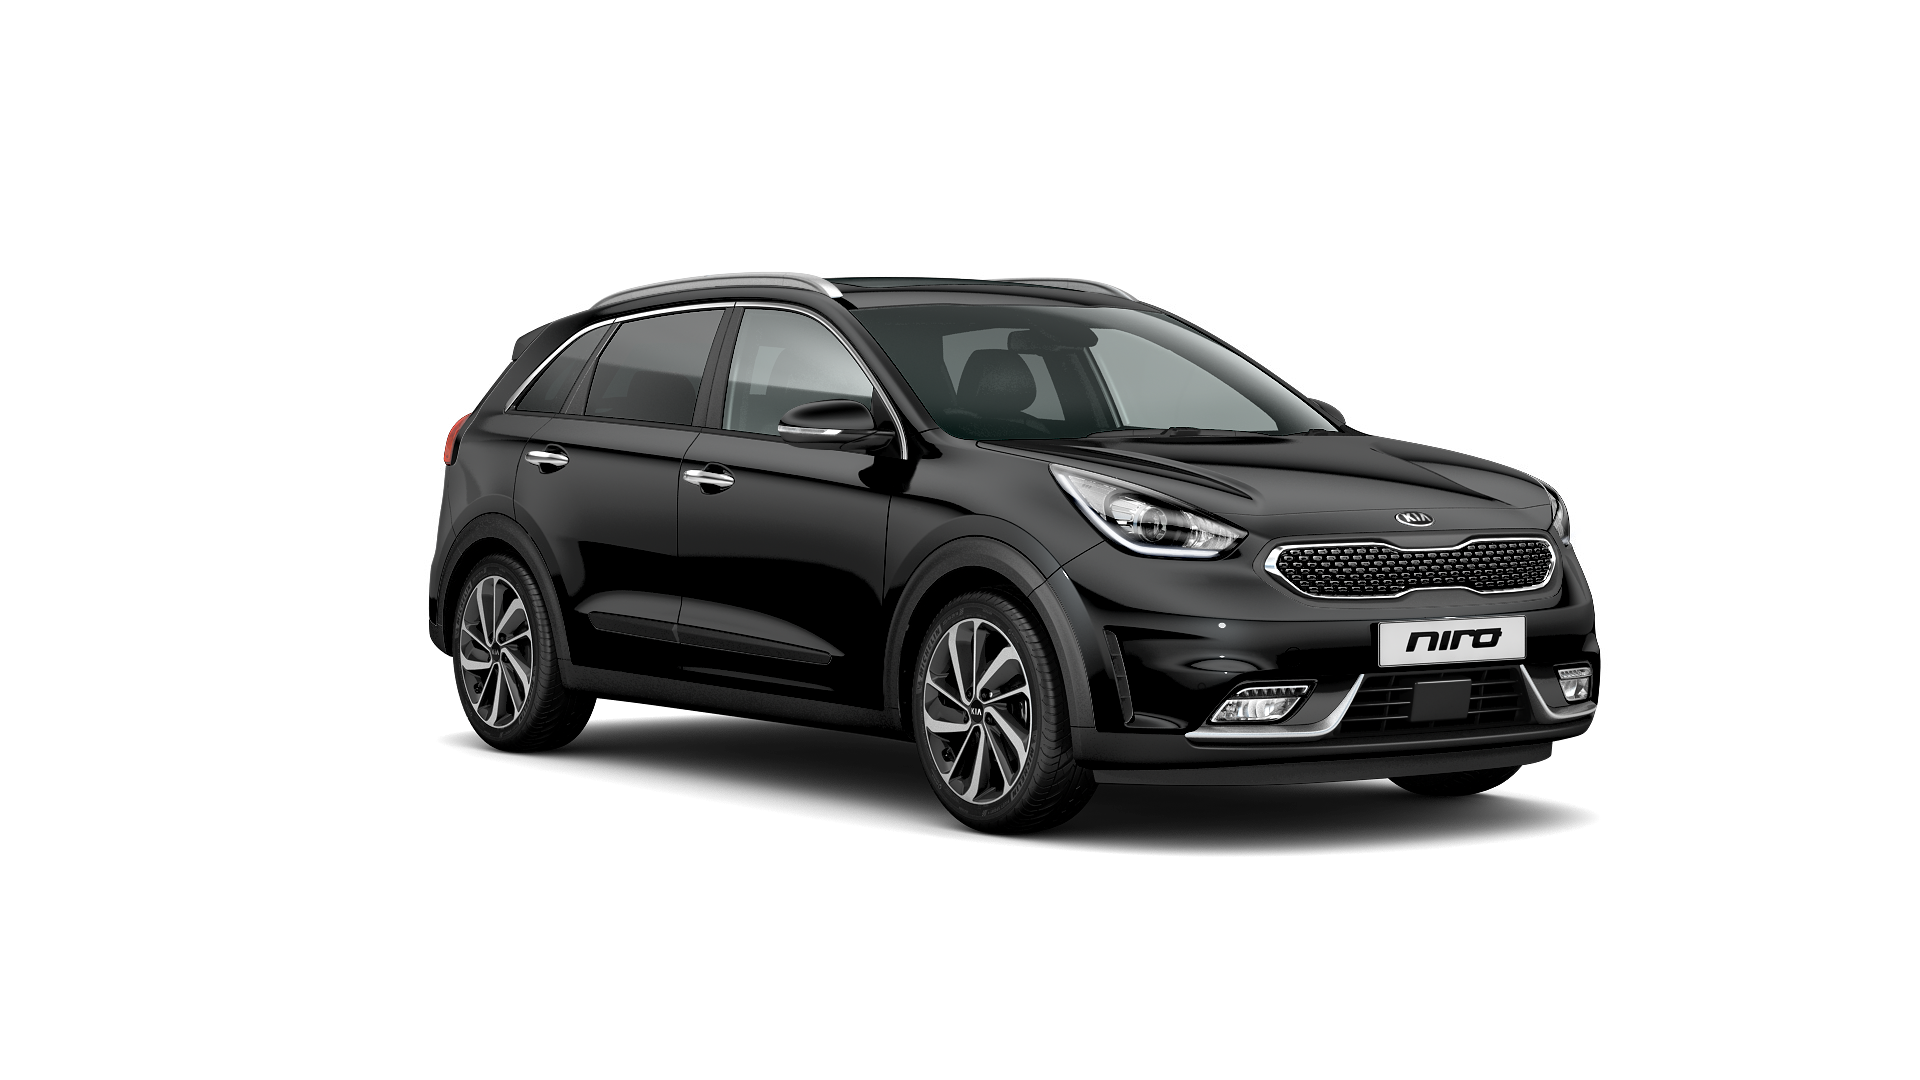 Kia Niro Midnight Black